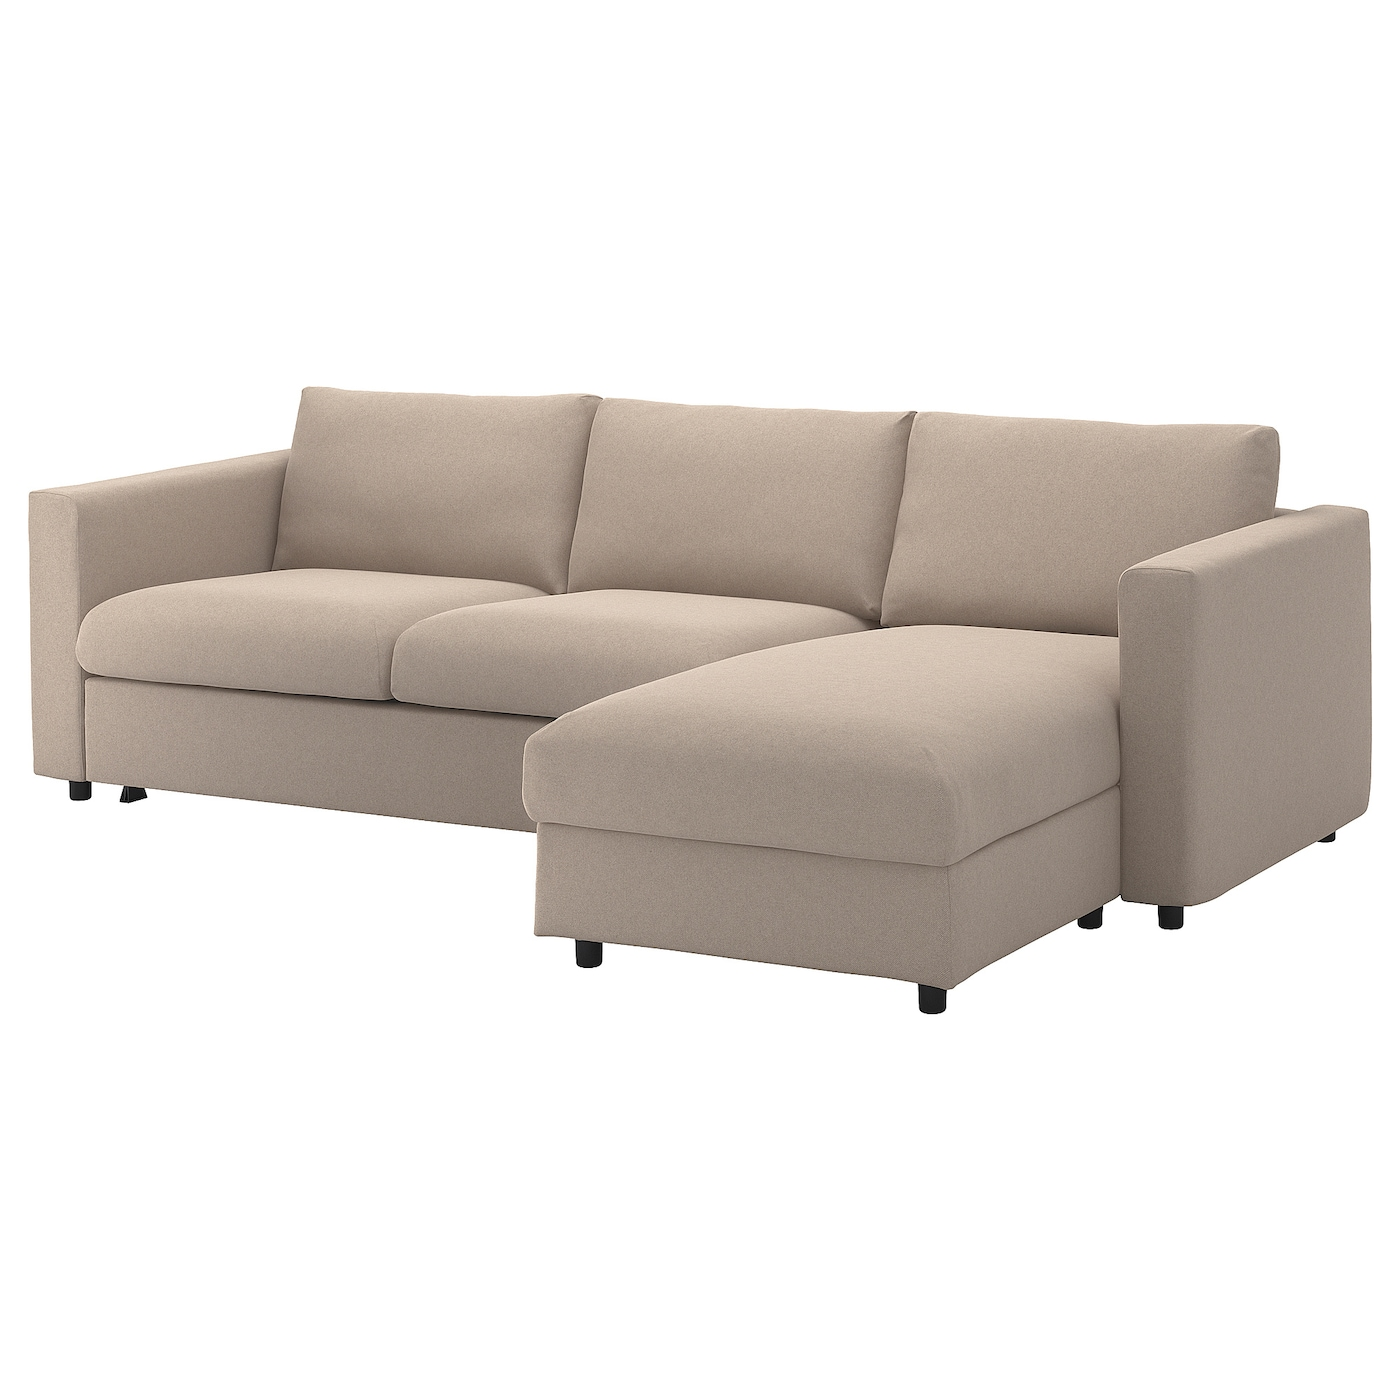 IKEA VIMLE 3-seat sofa-bed 10 year guarantee. Read about the terms in the guarantee brochure.